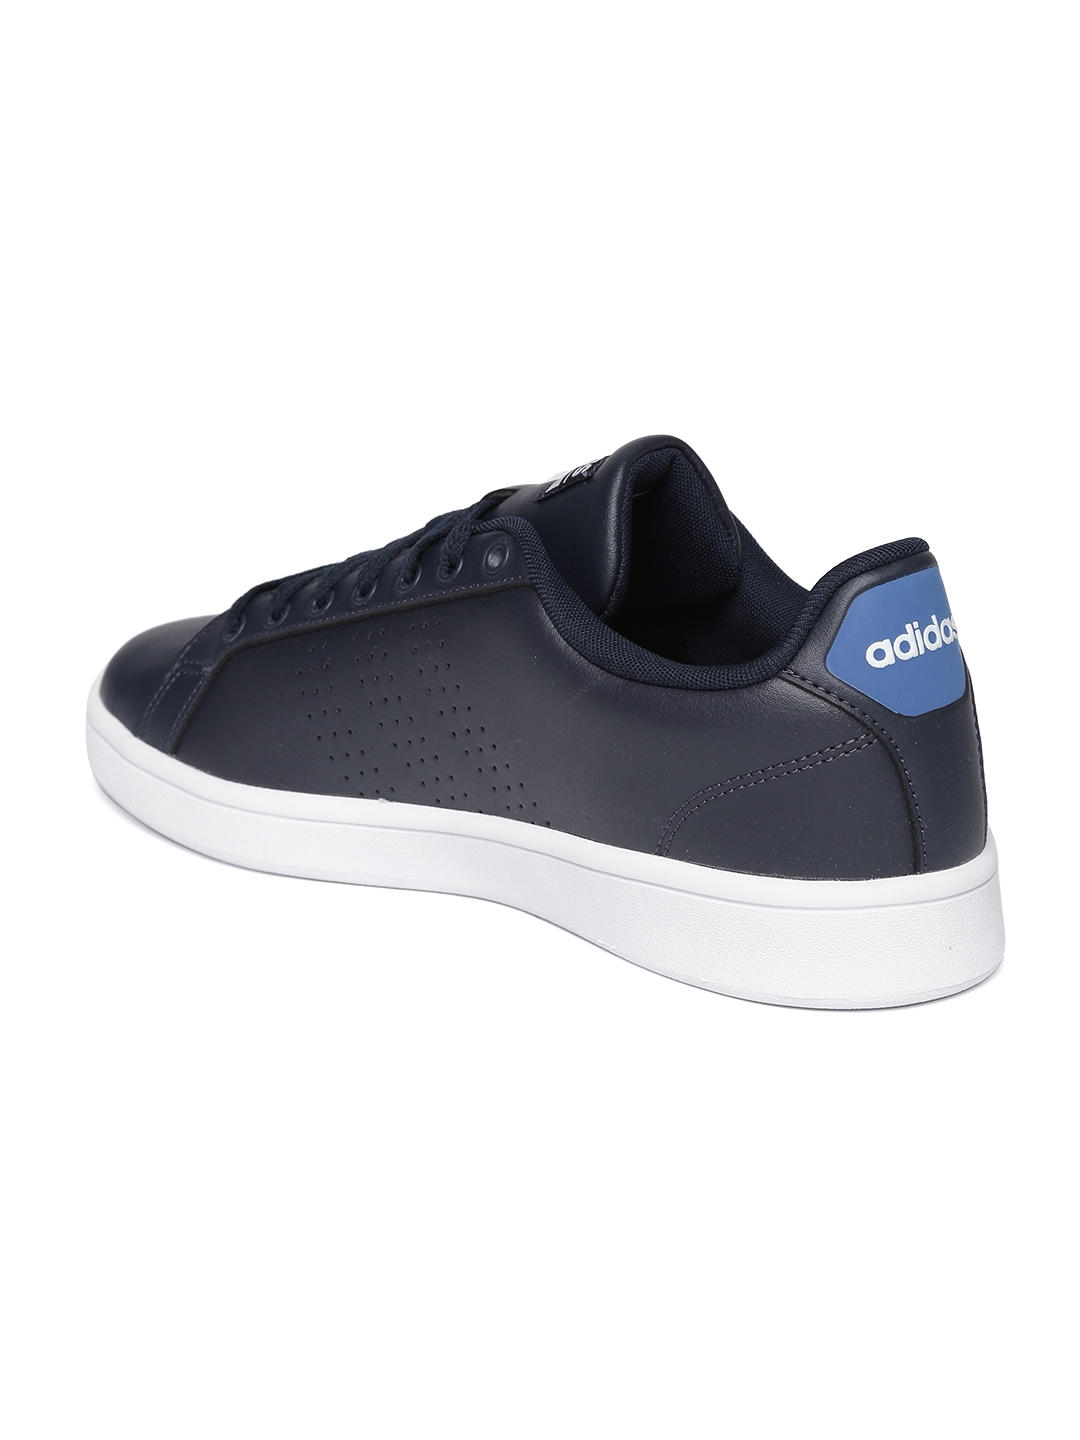 sports shoes c29d1 93e53 Adidas NEO Men Navy Blue Cloud Foam Advantage Clean Perforated Leather  Sneakers